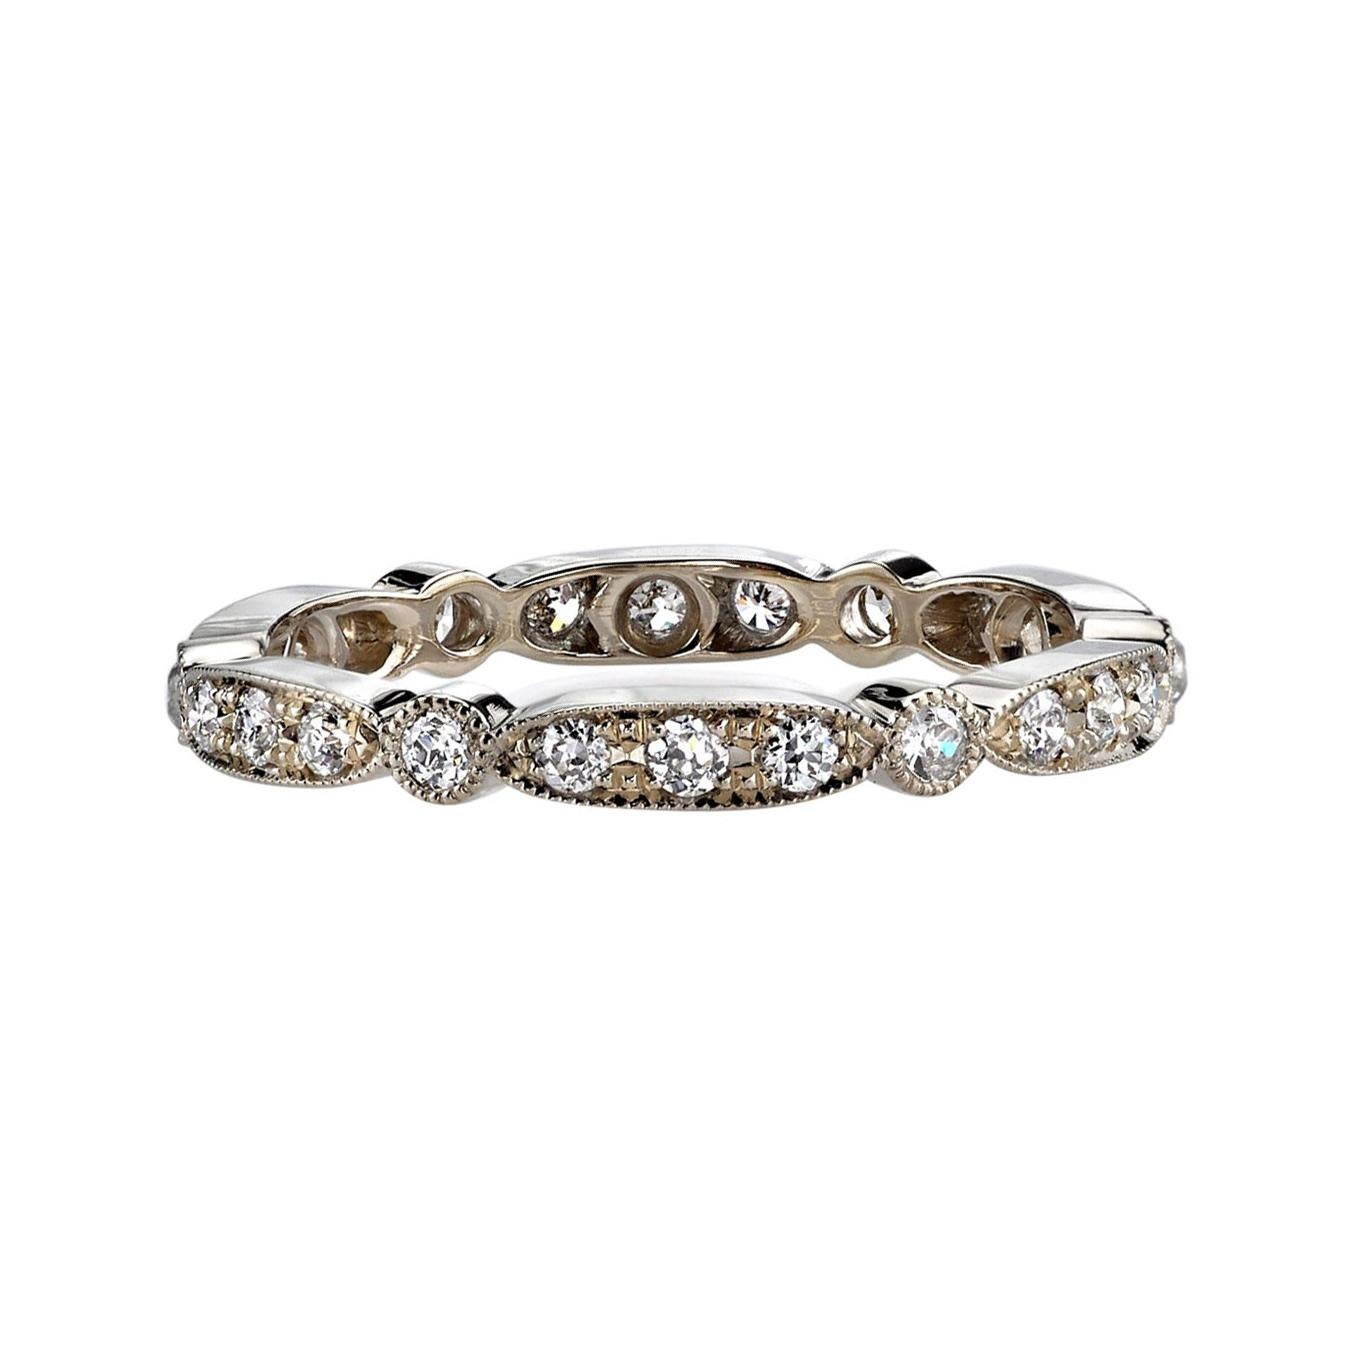 Approx. 0.50 Old European Cut Diamonds Set in a Handcrafted Gold Eternity Band